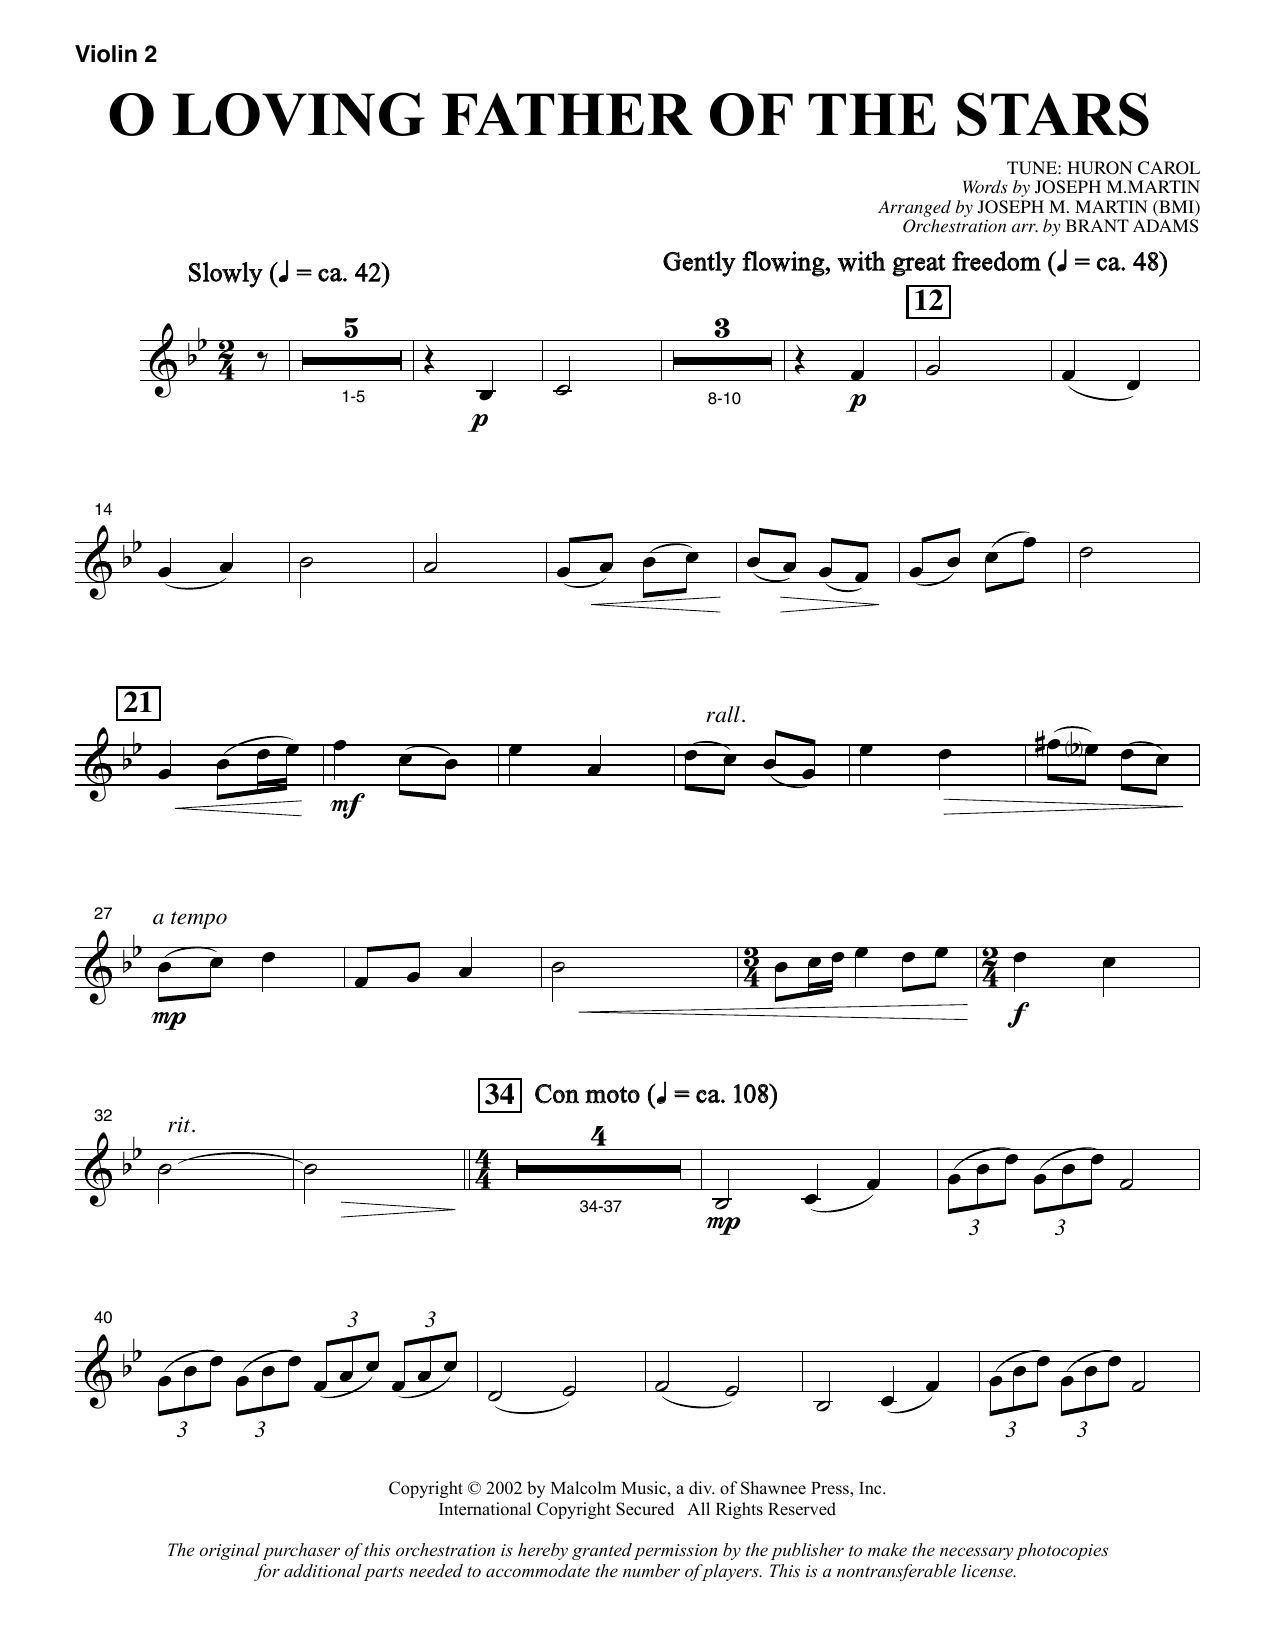 O Loving Father Of The Stars (from Morning Star) - Violin 2 sheet music